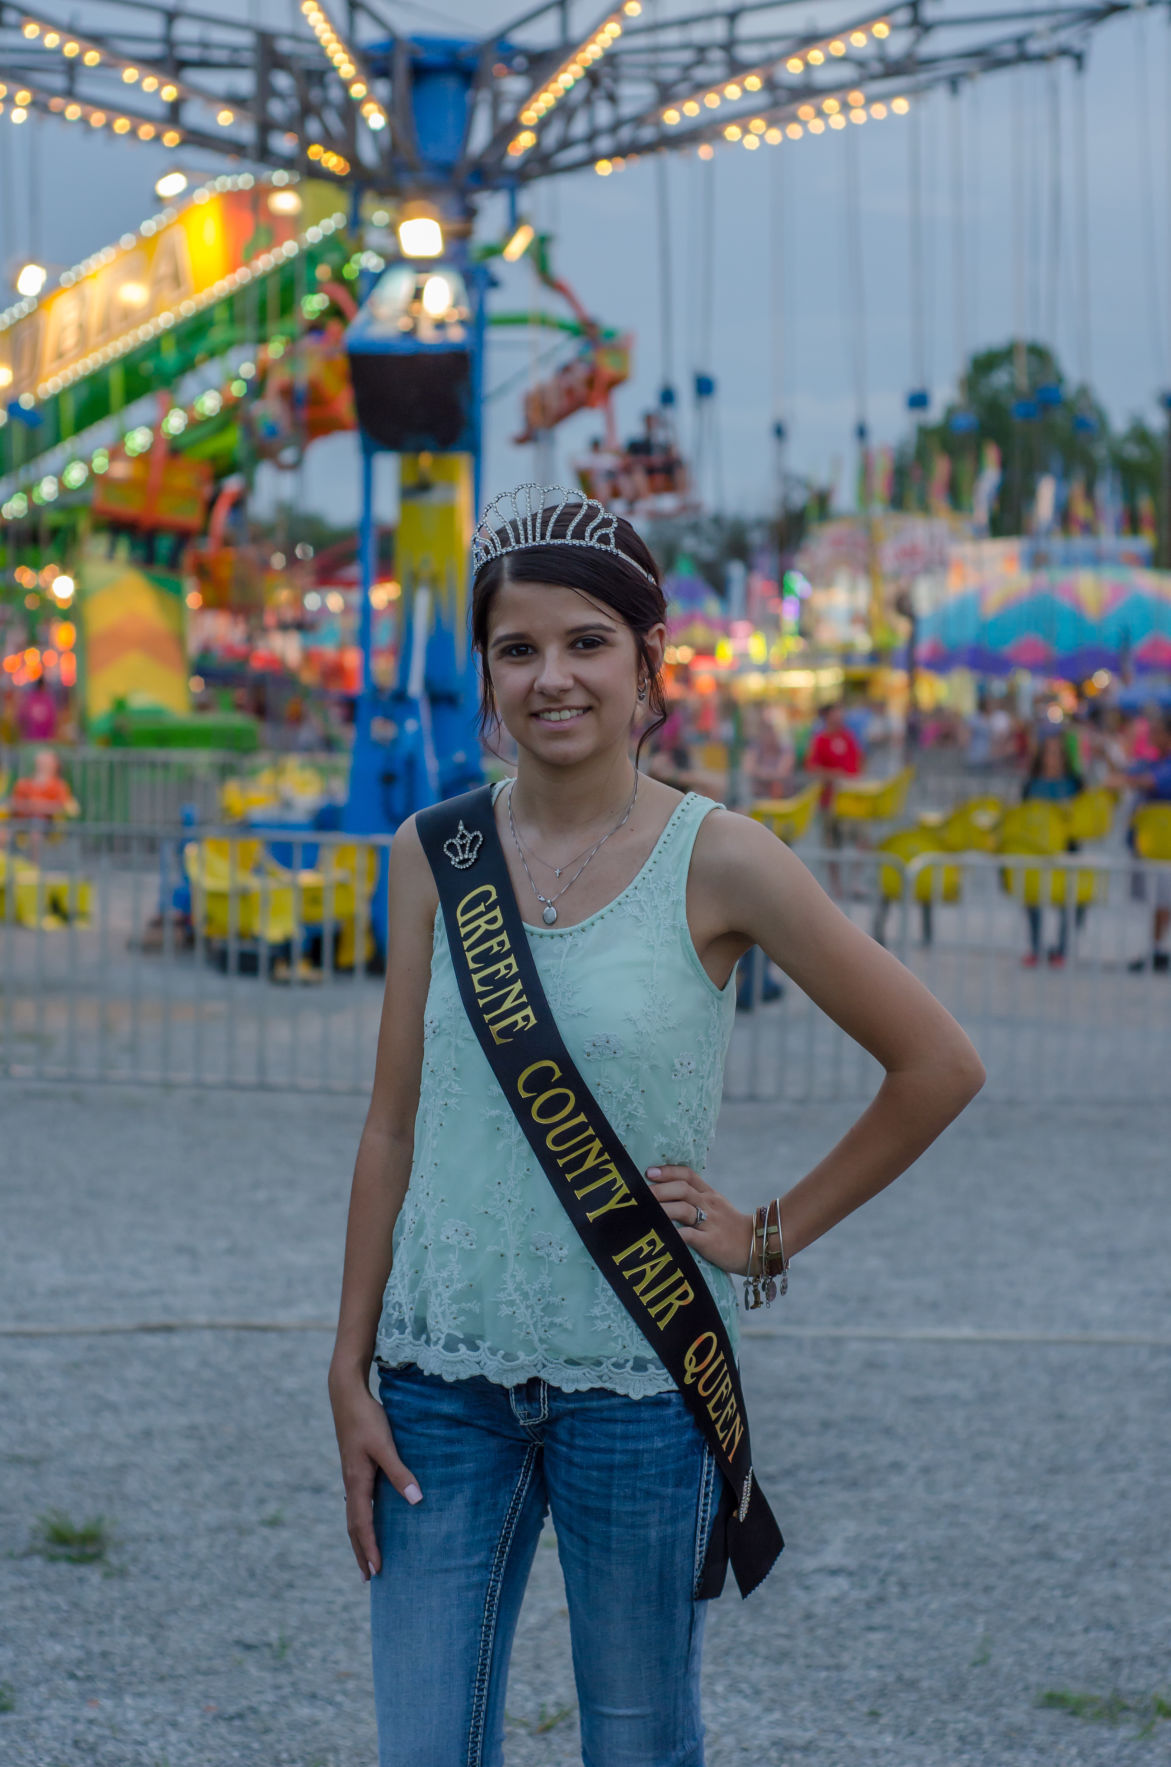 Fair queen reflects on year of royalty